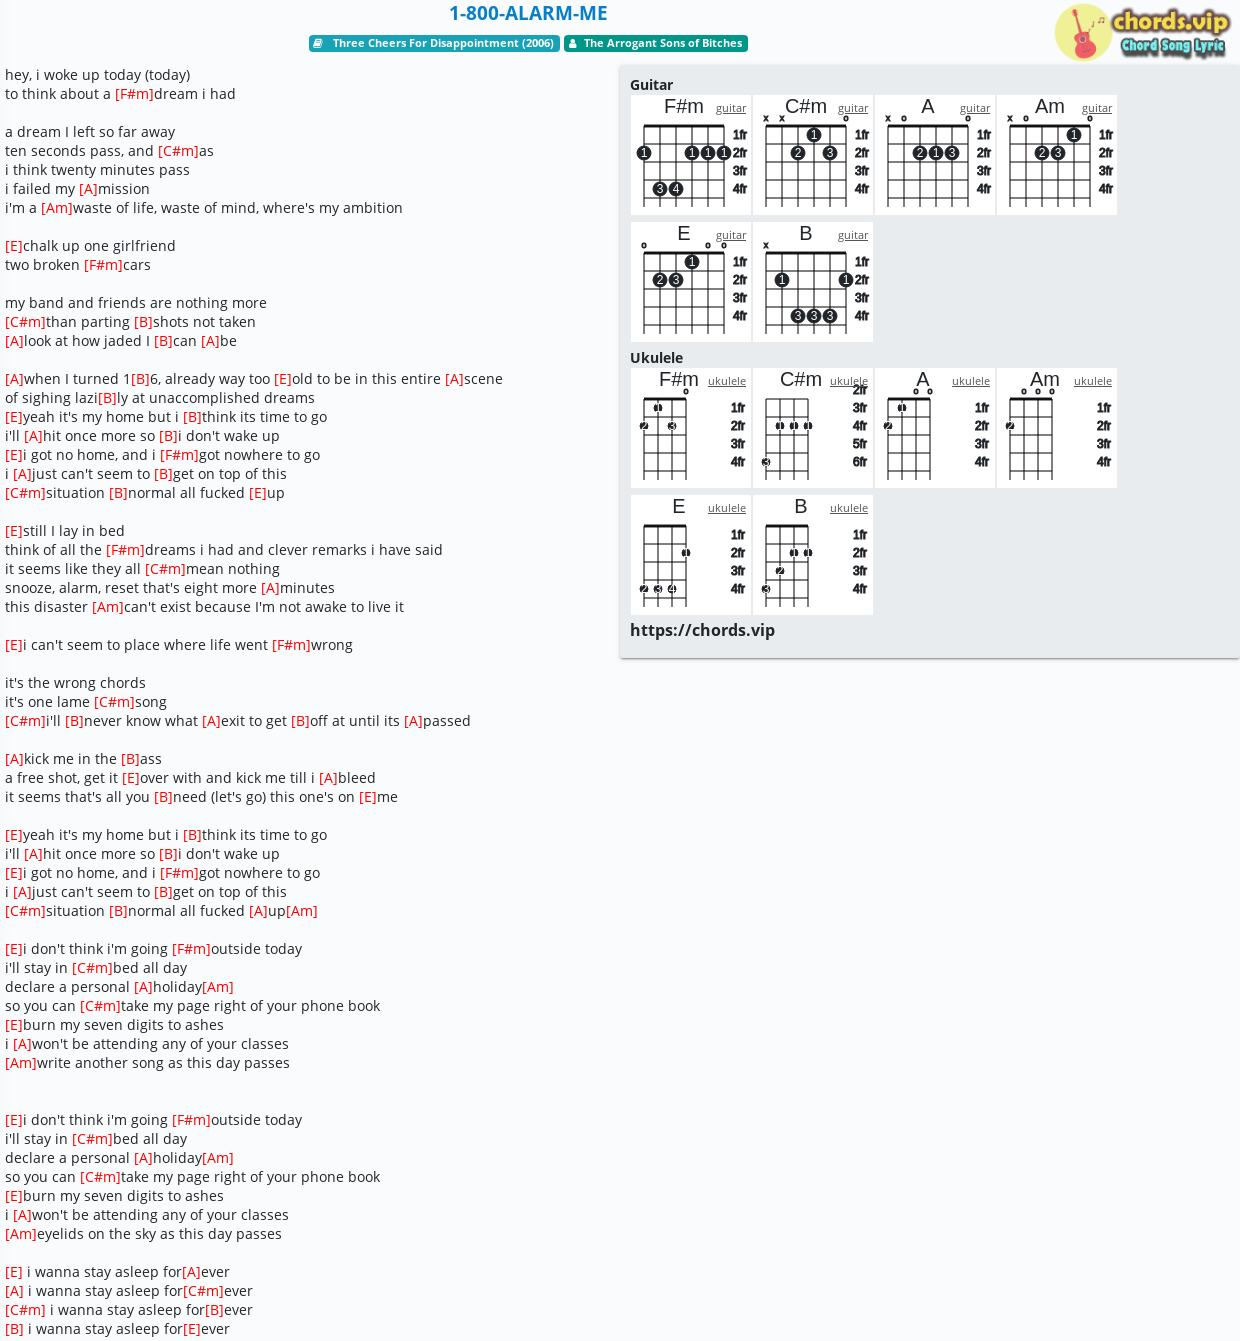 Chord: 1-800-ALARM-ME - The Arrogant Sons of Bitches - tab, song lyric,  sheet, guitar, ukulele | chords.vip